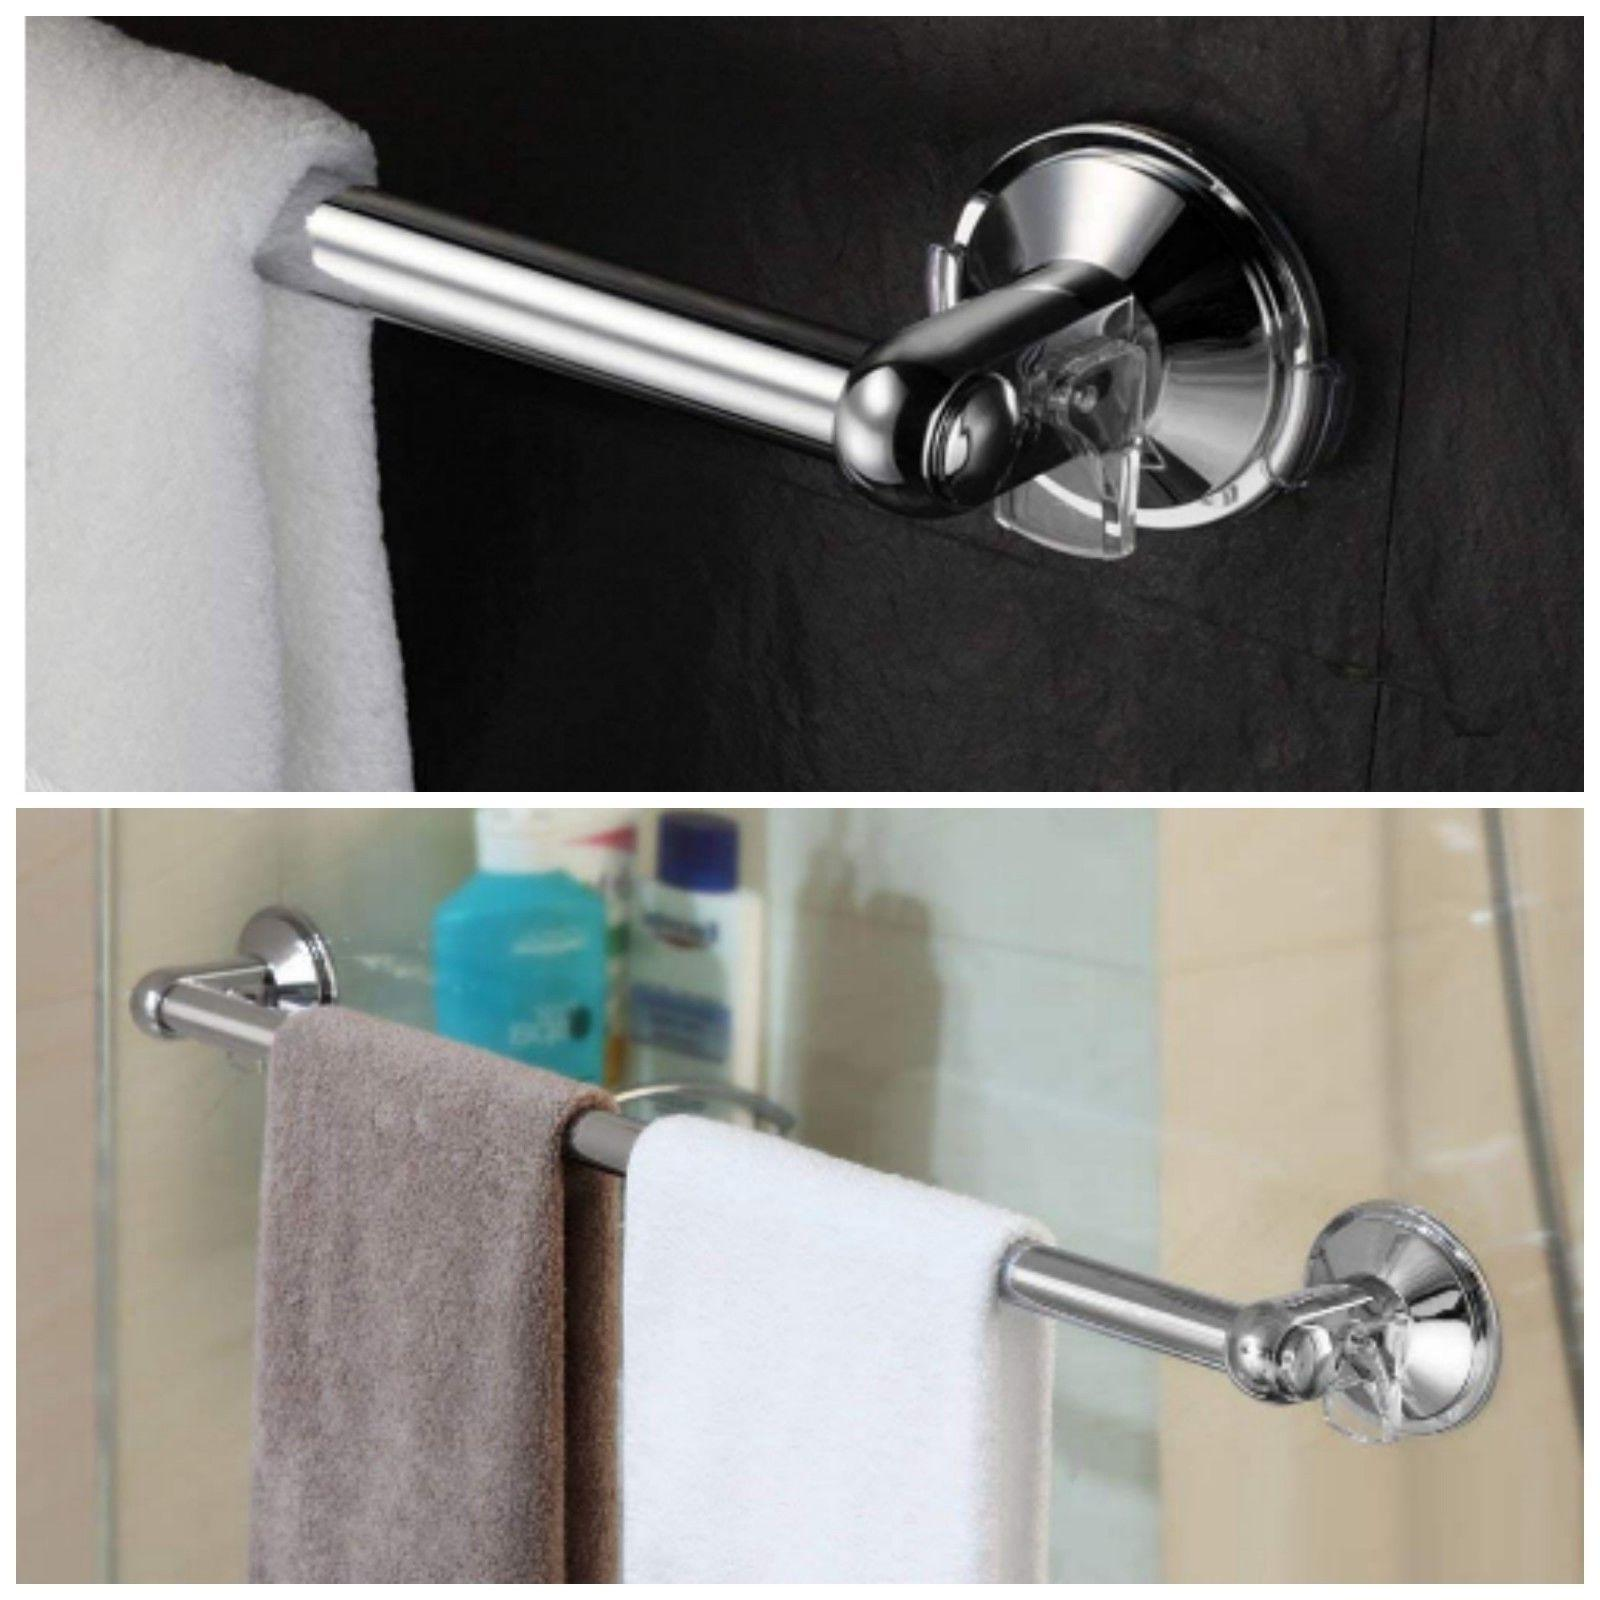 Shower Door Towel Bar Chrome Suction Mount Bathroom Rack Hol